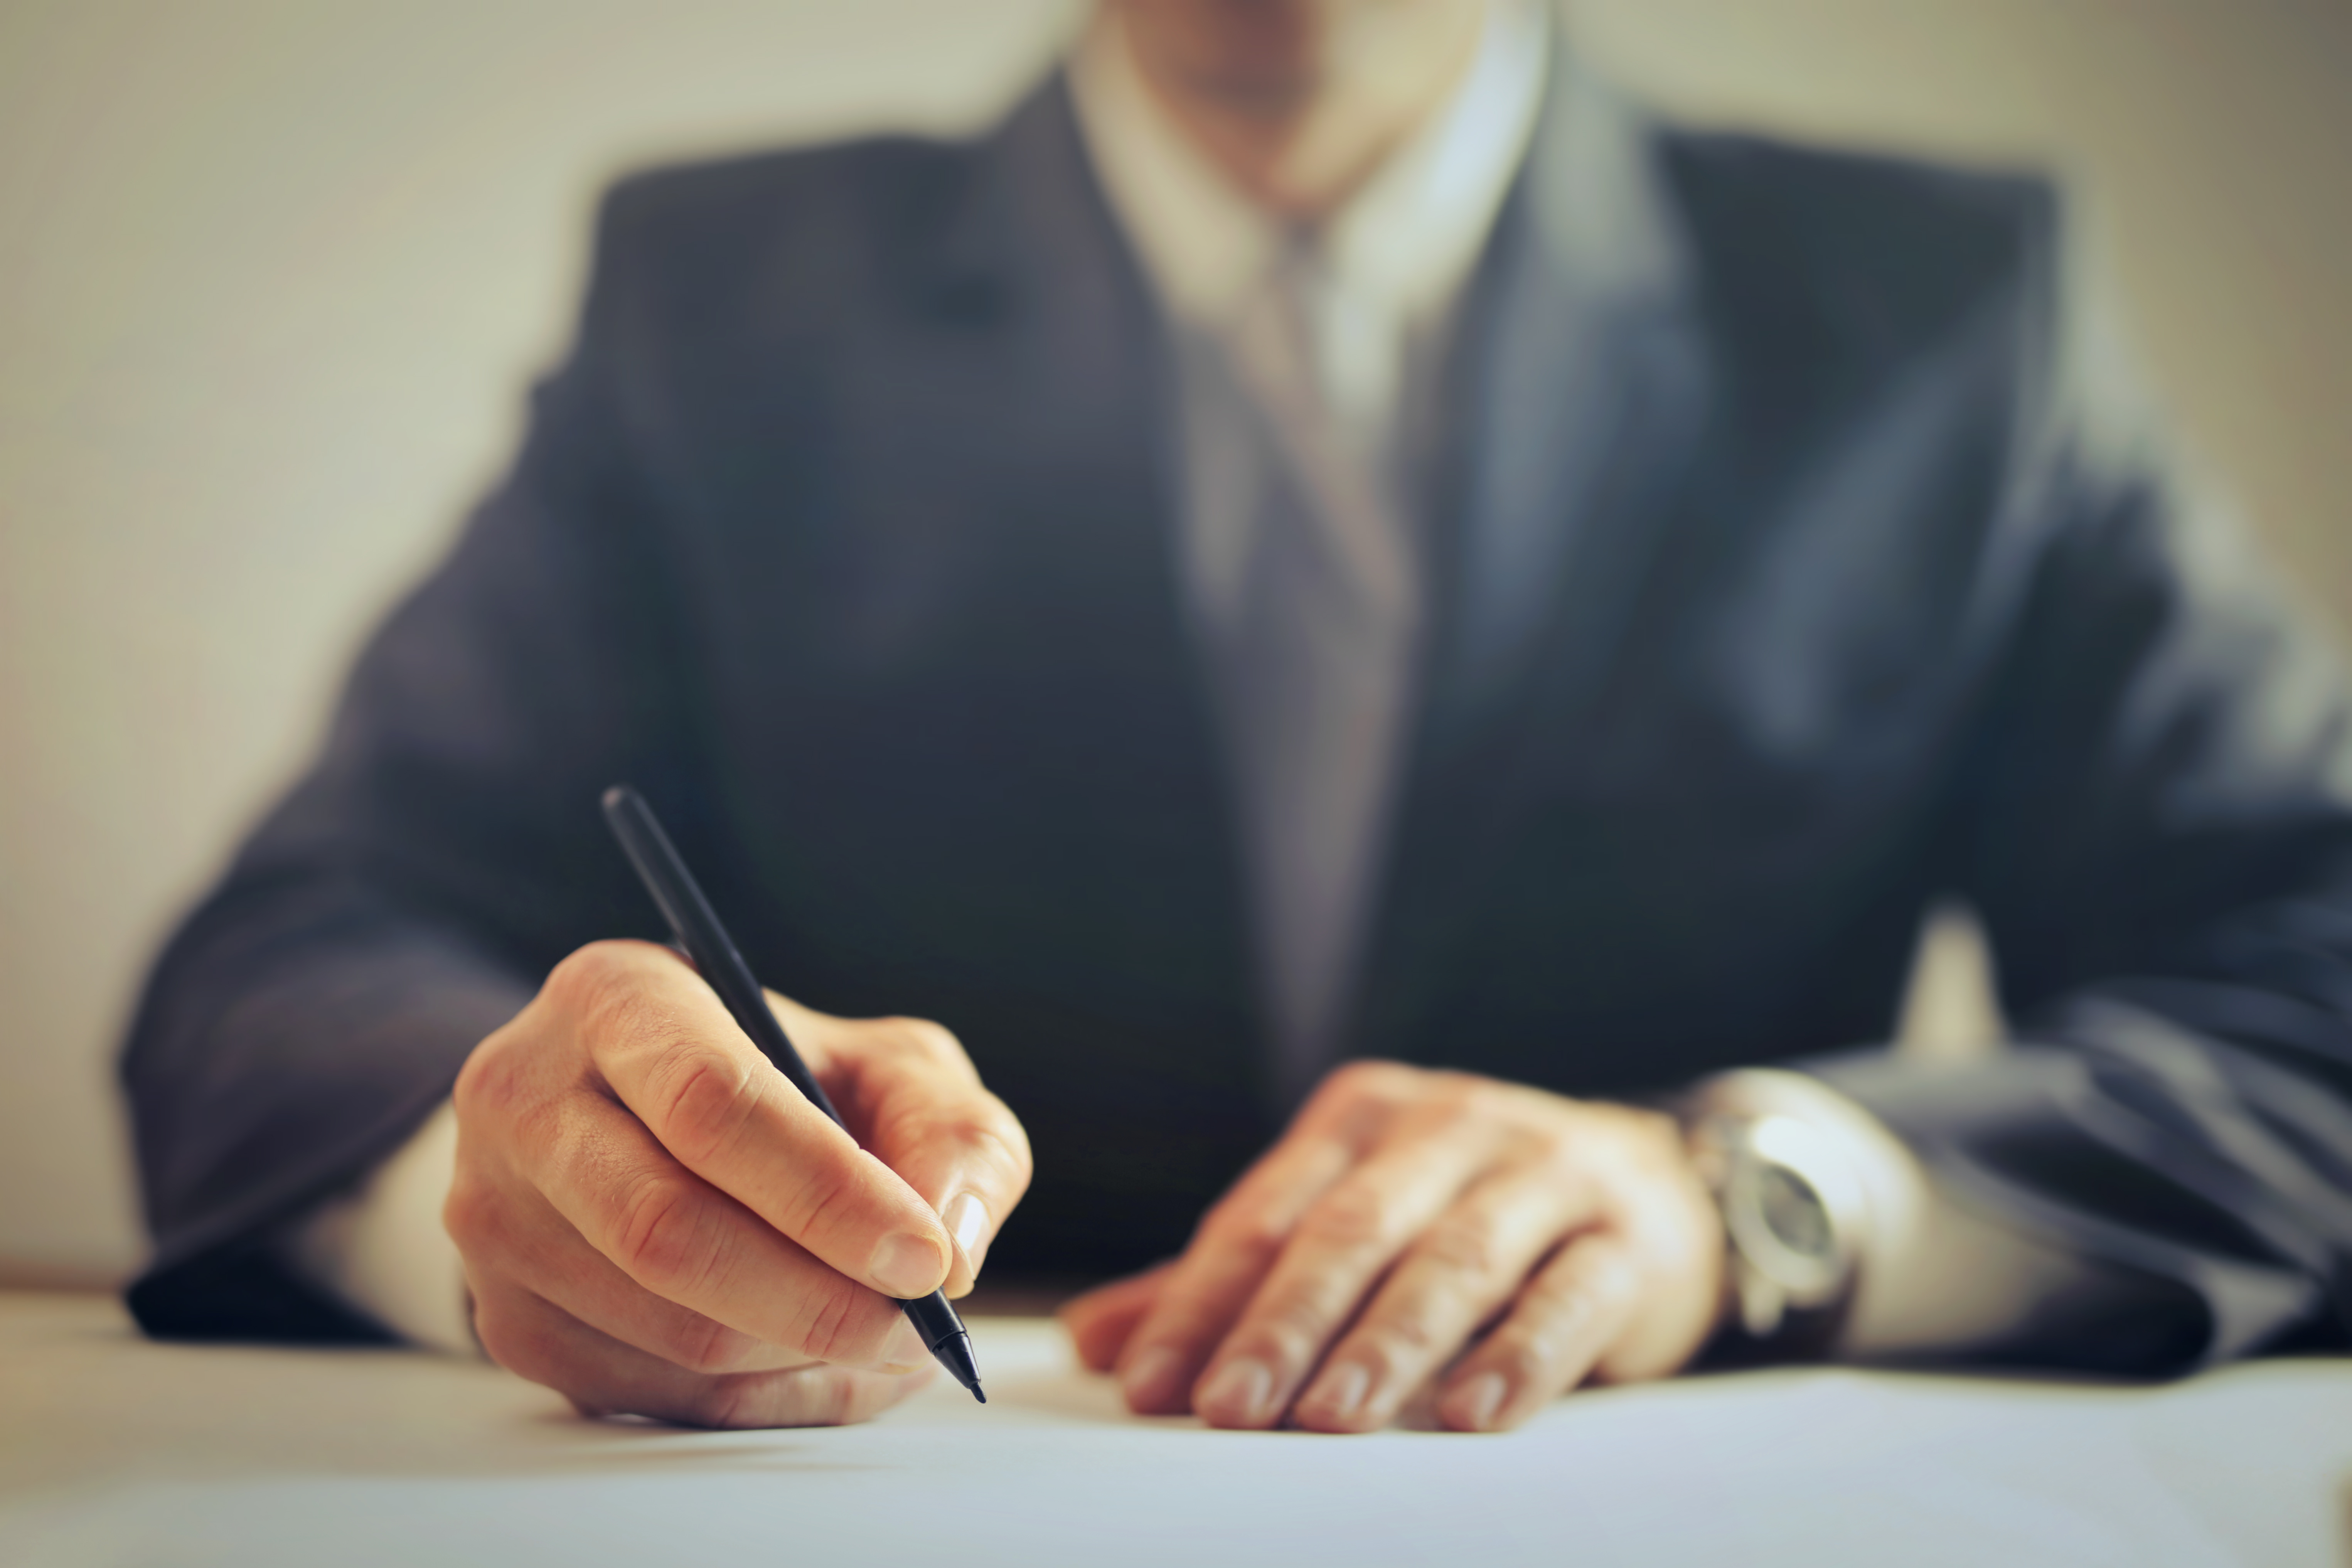 crop-businessman-signing-contract-in-office-3771097.jpg